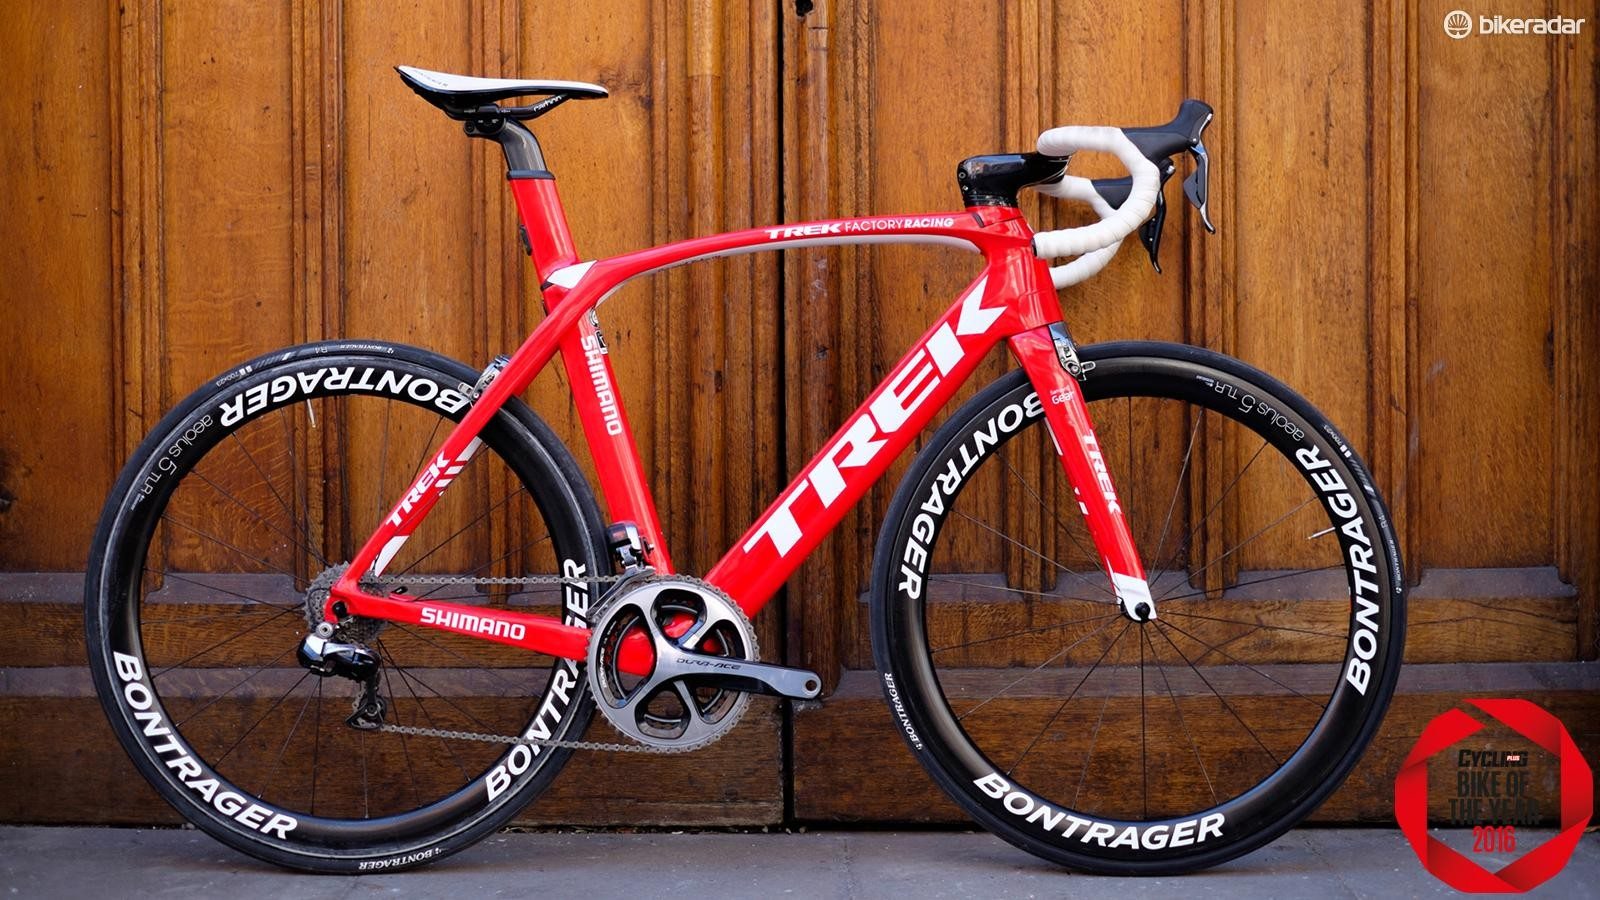 Our Trek Madone Project One Race Shop Limited didn't really do stealthy